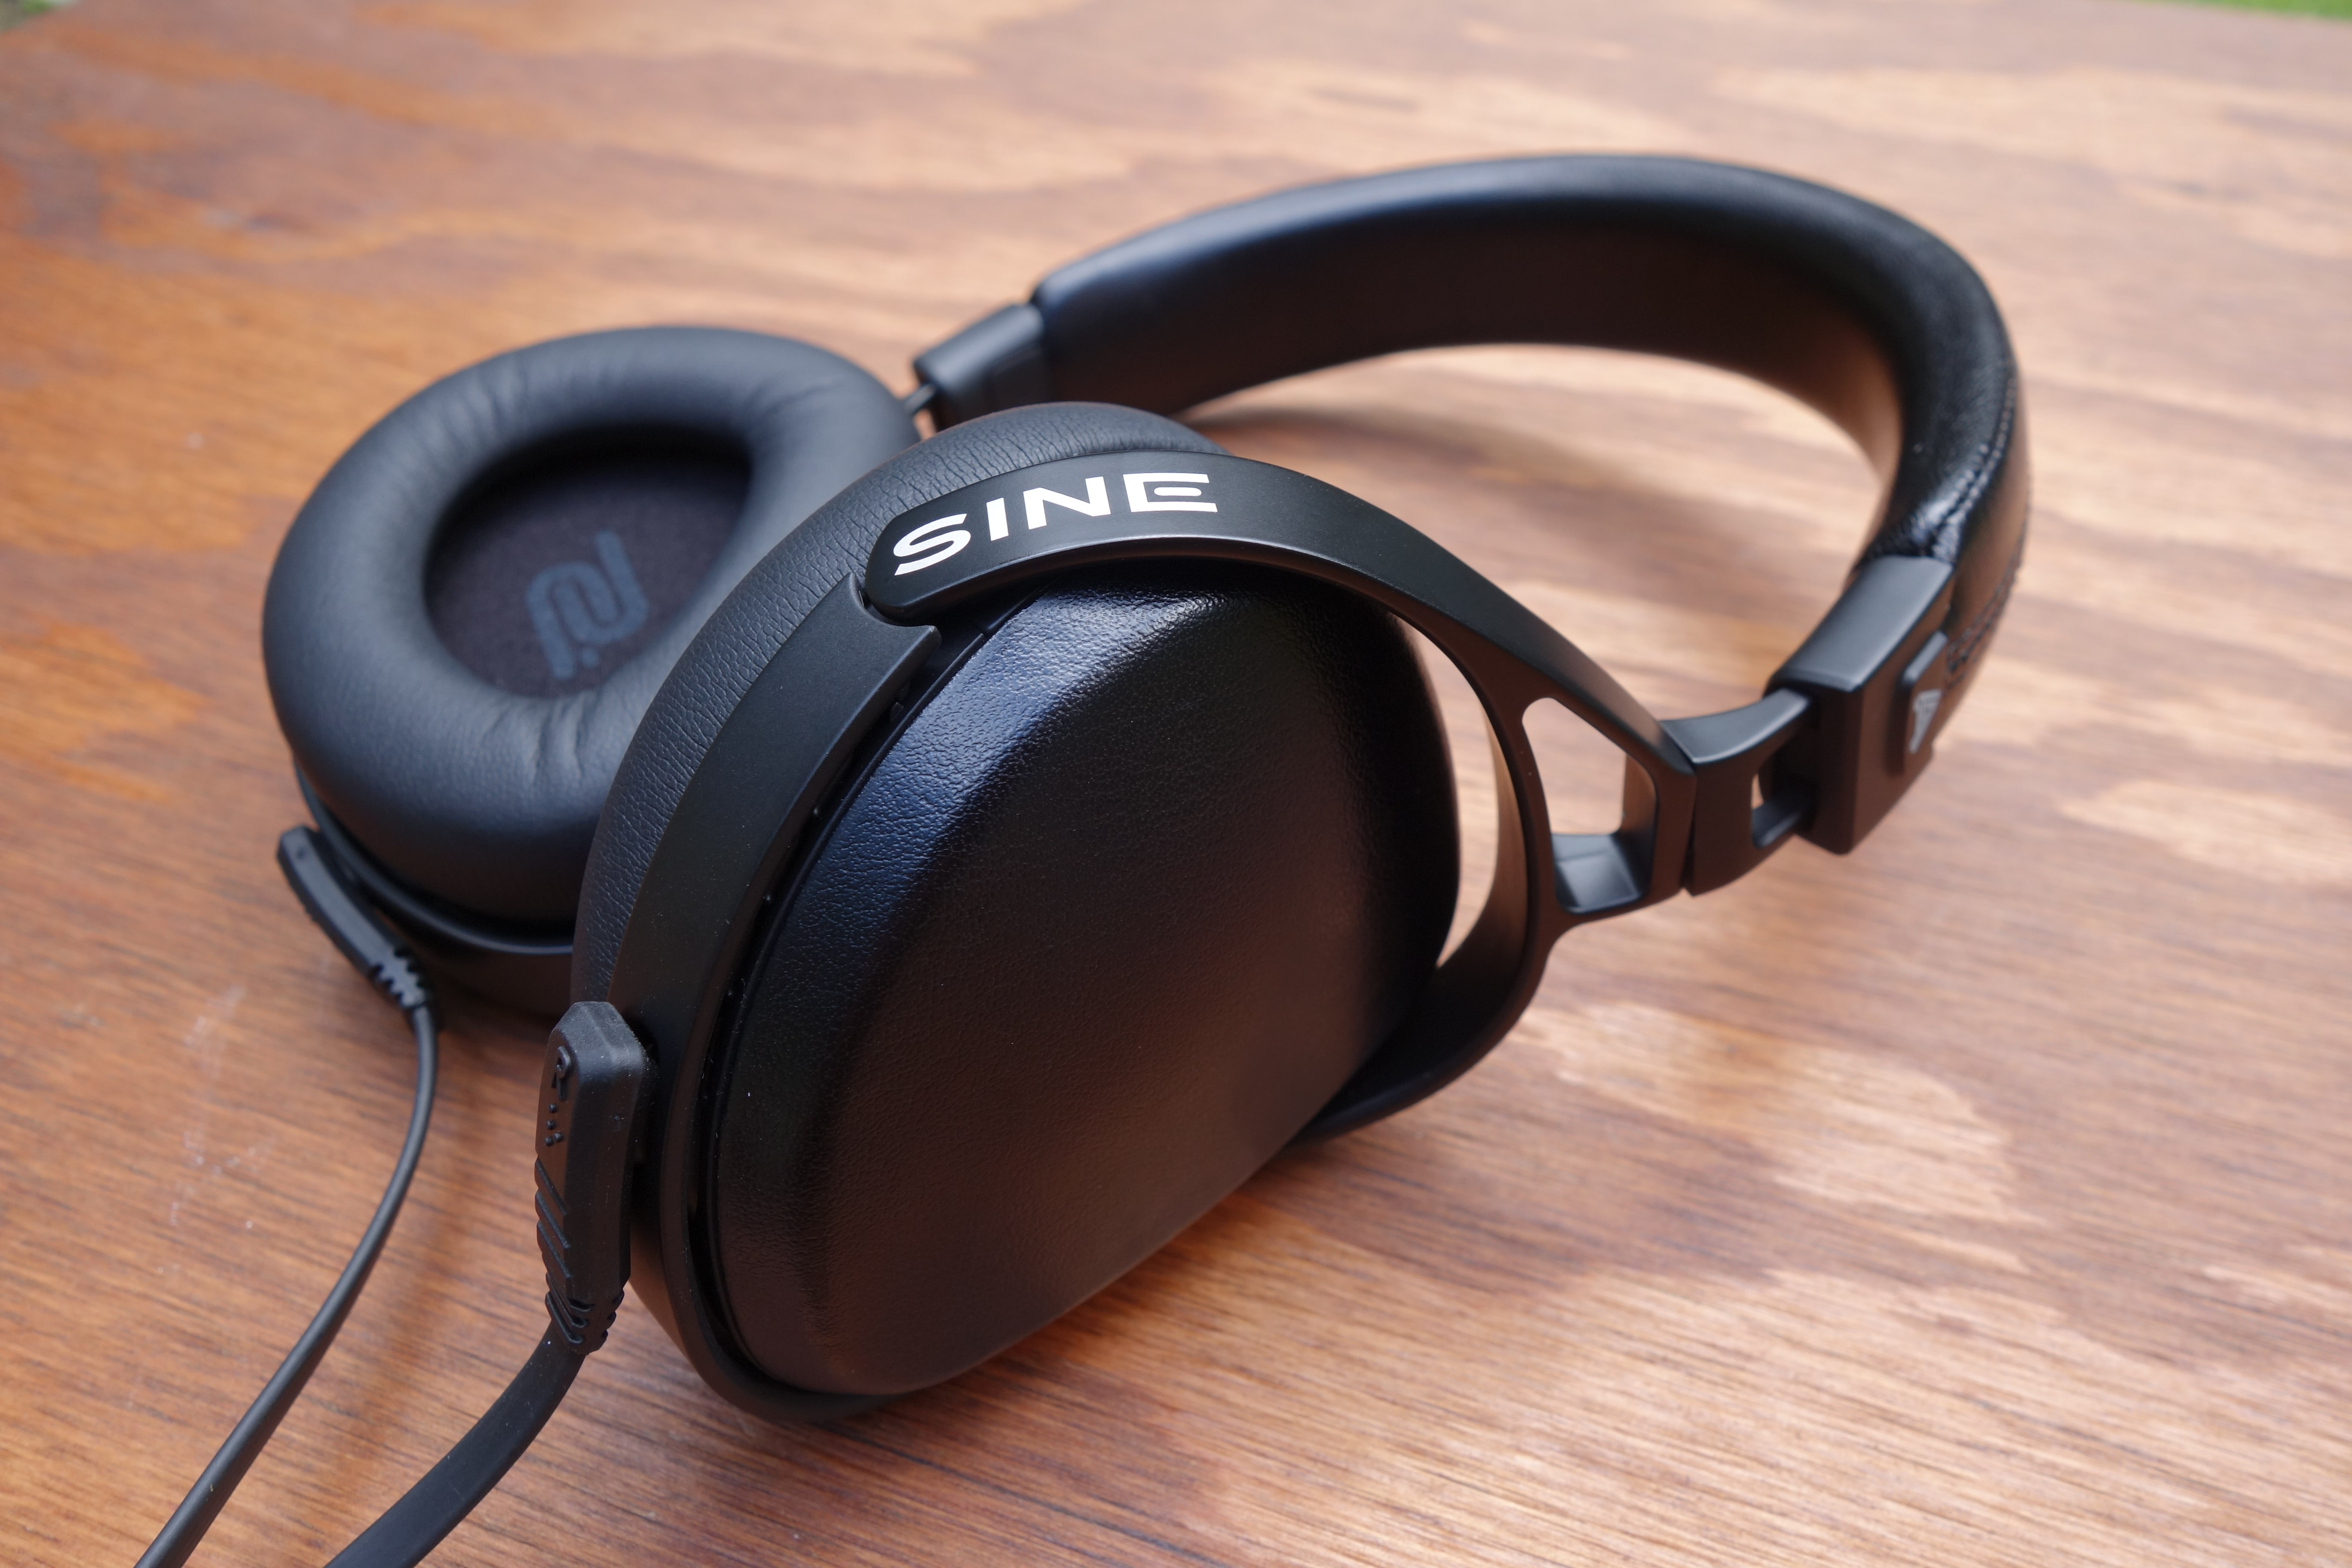 Audeze SINE headphone review: High-end on-ears, because why not?